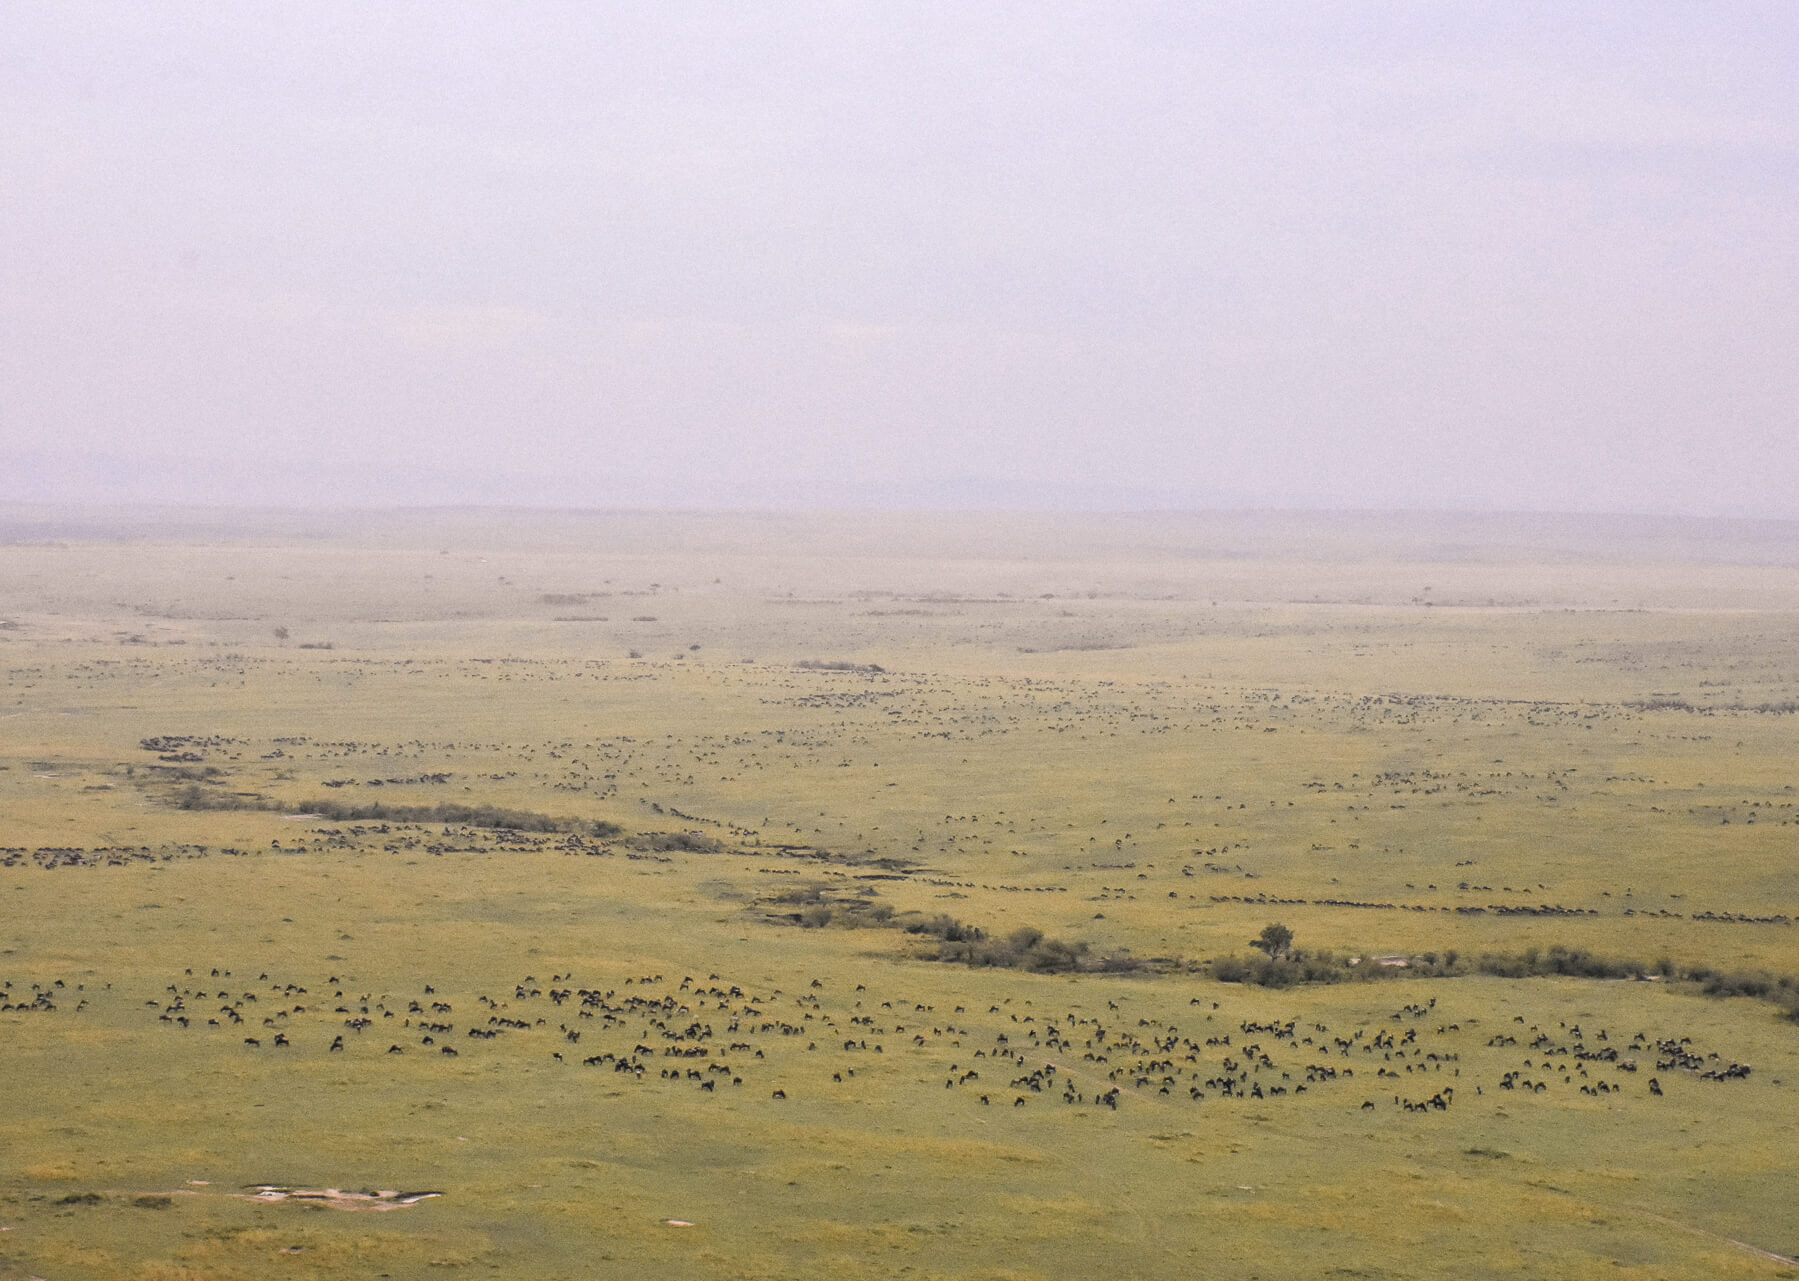 Overlooking the savanna with thousands of tiny wildebeest scattered across the plains